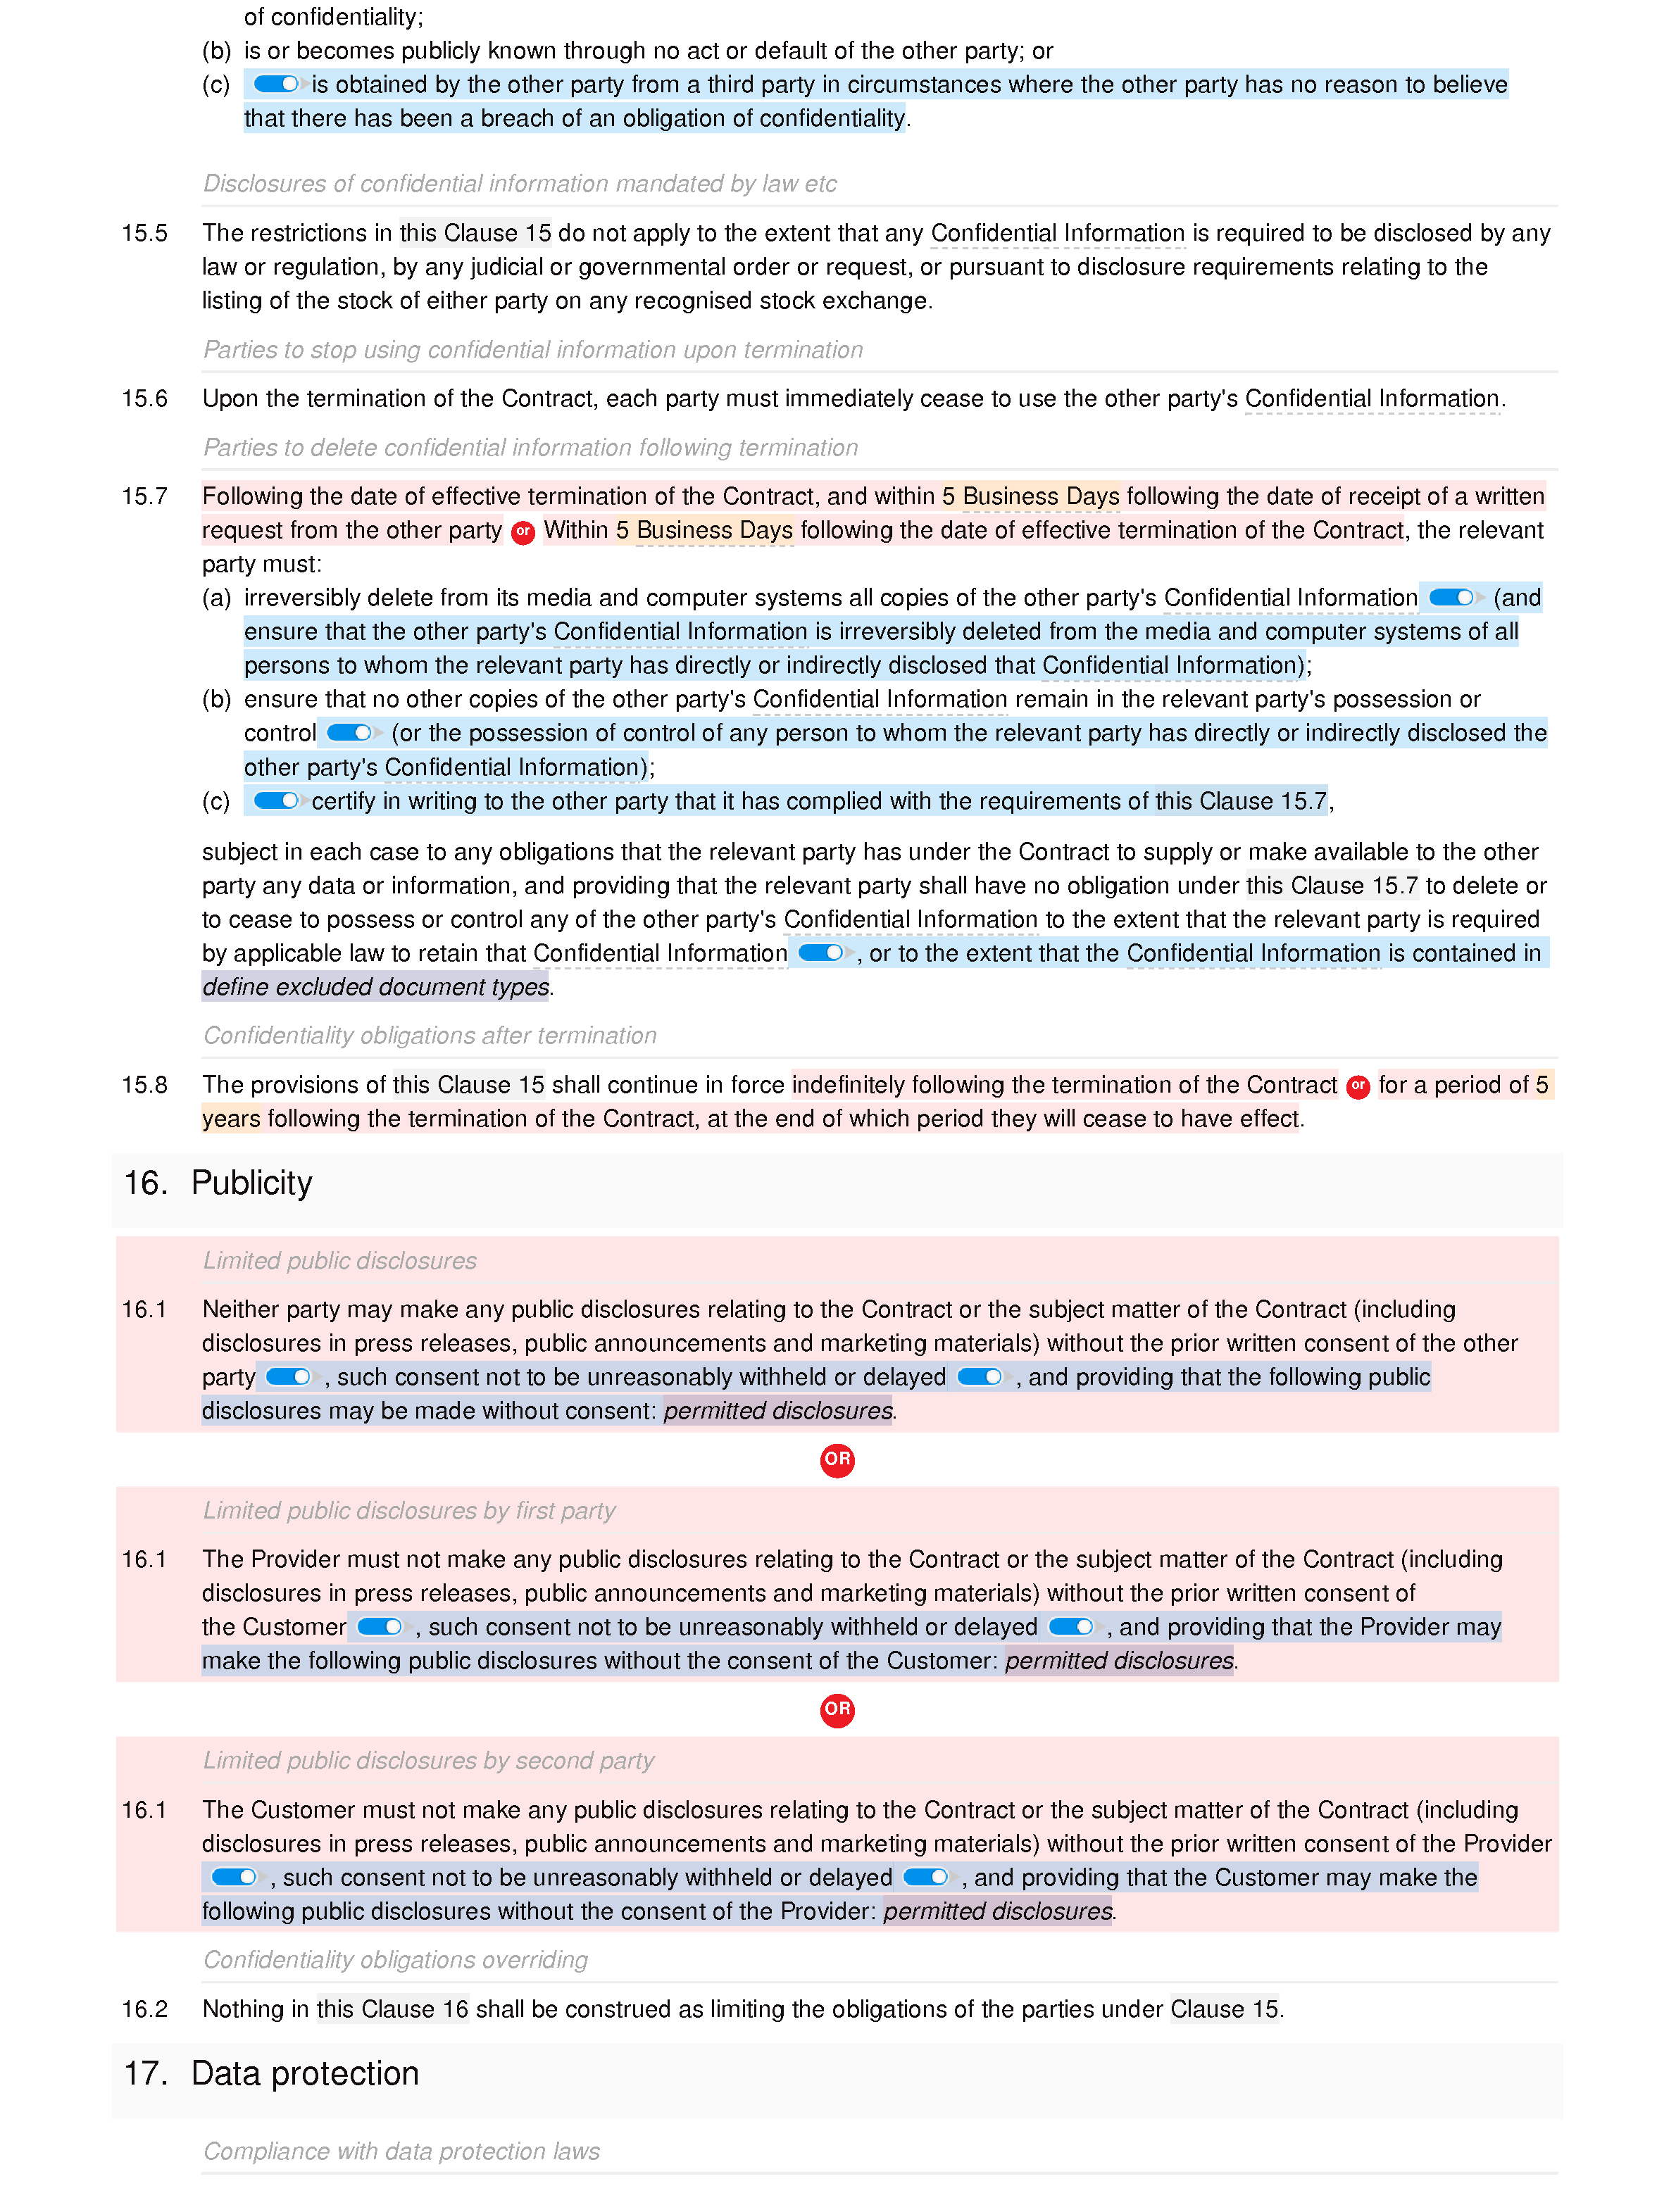 Web services terms and conditions document editor preview